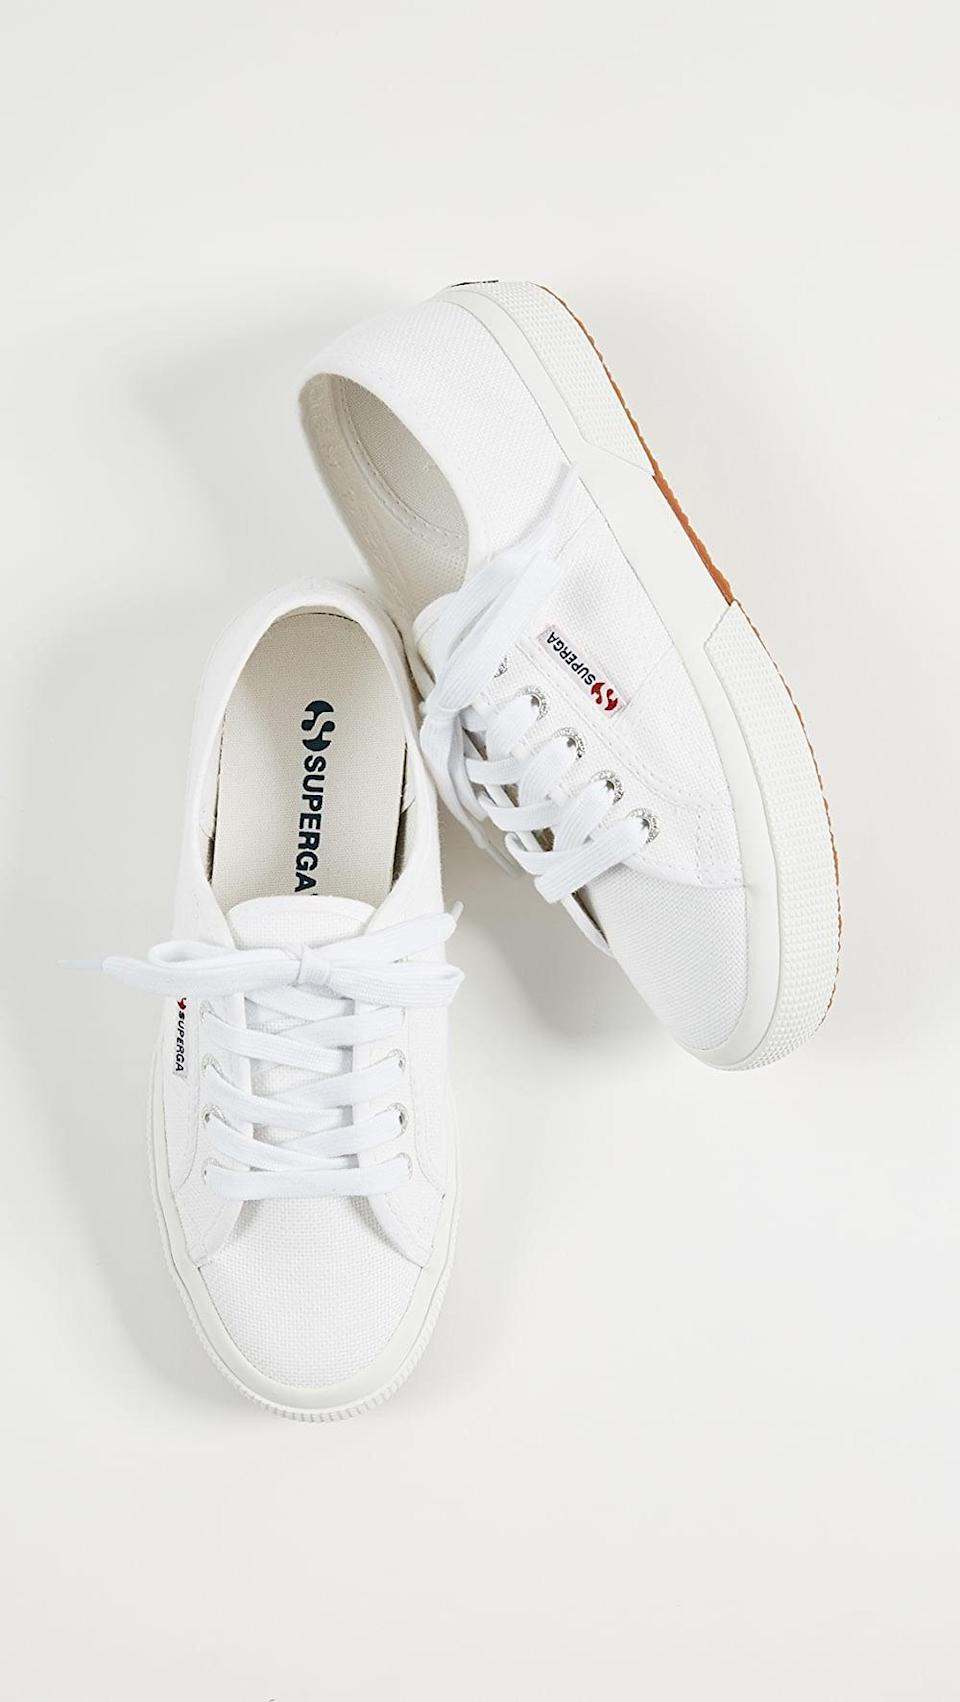 """<p><span>Superga 2750 Cotu Classic Sneakers</span> ($65)</p> <p>""""I love a good white leather sneaker, but a canvas pair is always good to have on hand too. Not only are they supereasy to throw on with anything from jeans to dresses in spring and summer, but they're easy to throw in the washing machine and clean, so you'll own them forever."""" - Krista Jones, associate editor, Shop</p>"""